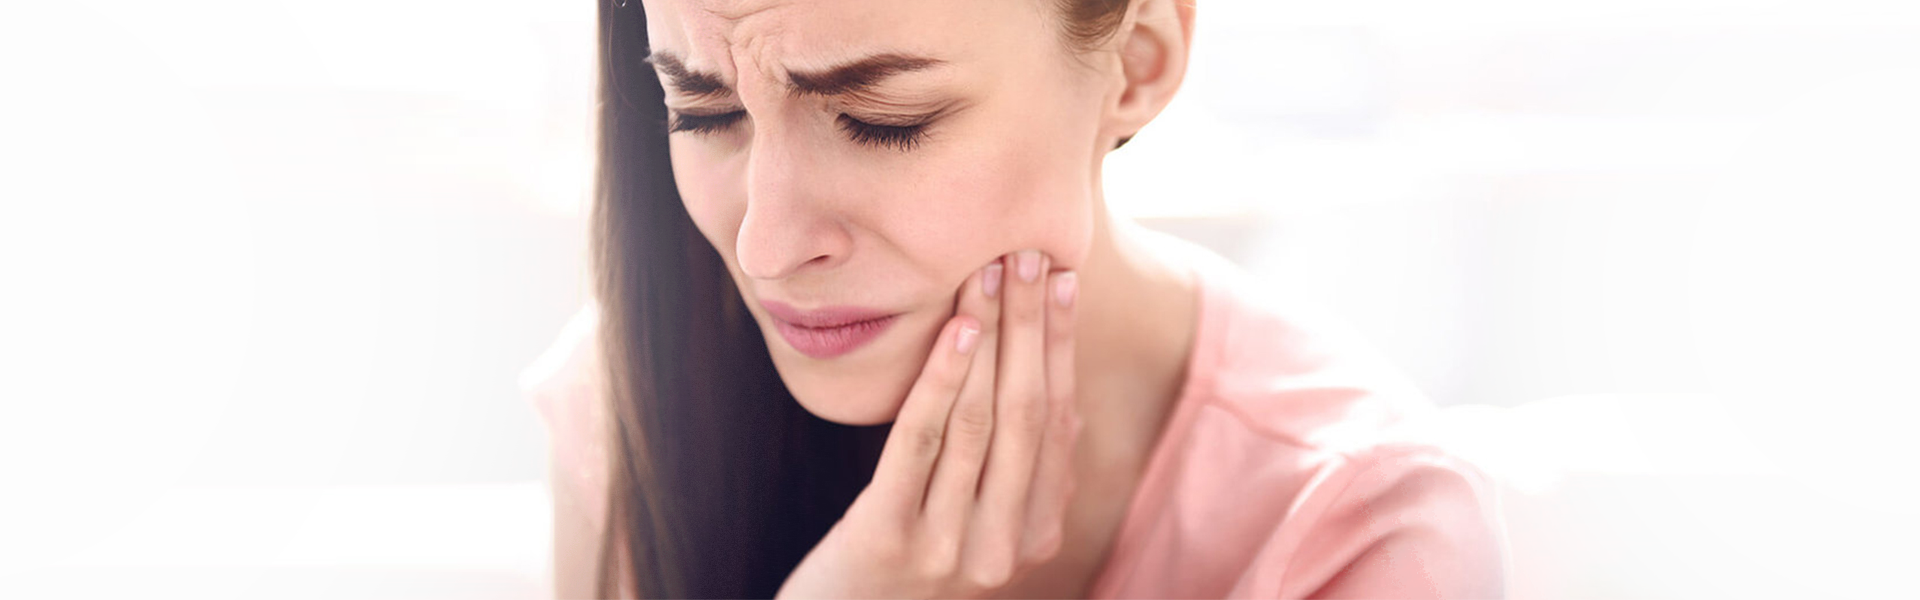 How Does Neurotoxin Help With Headaches And TMJ?